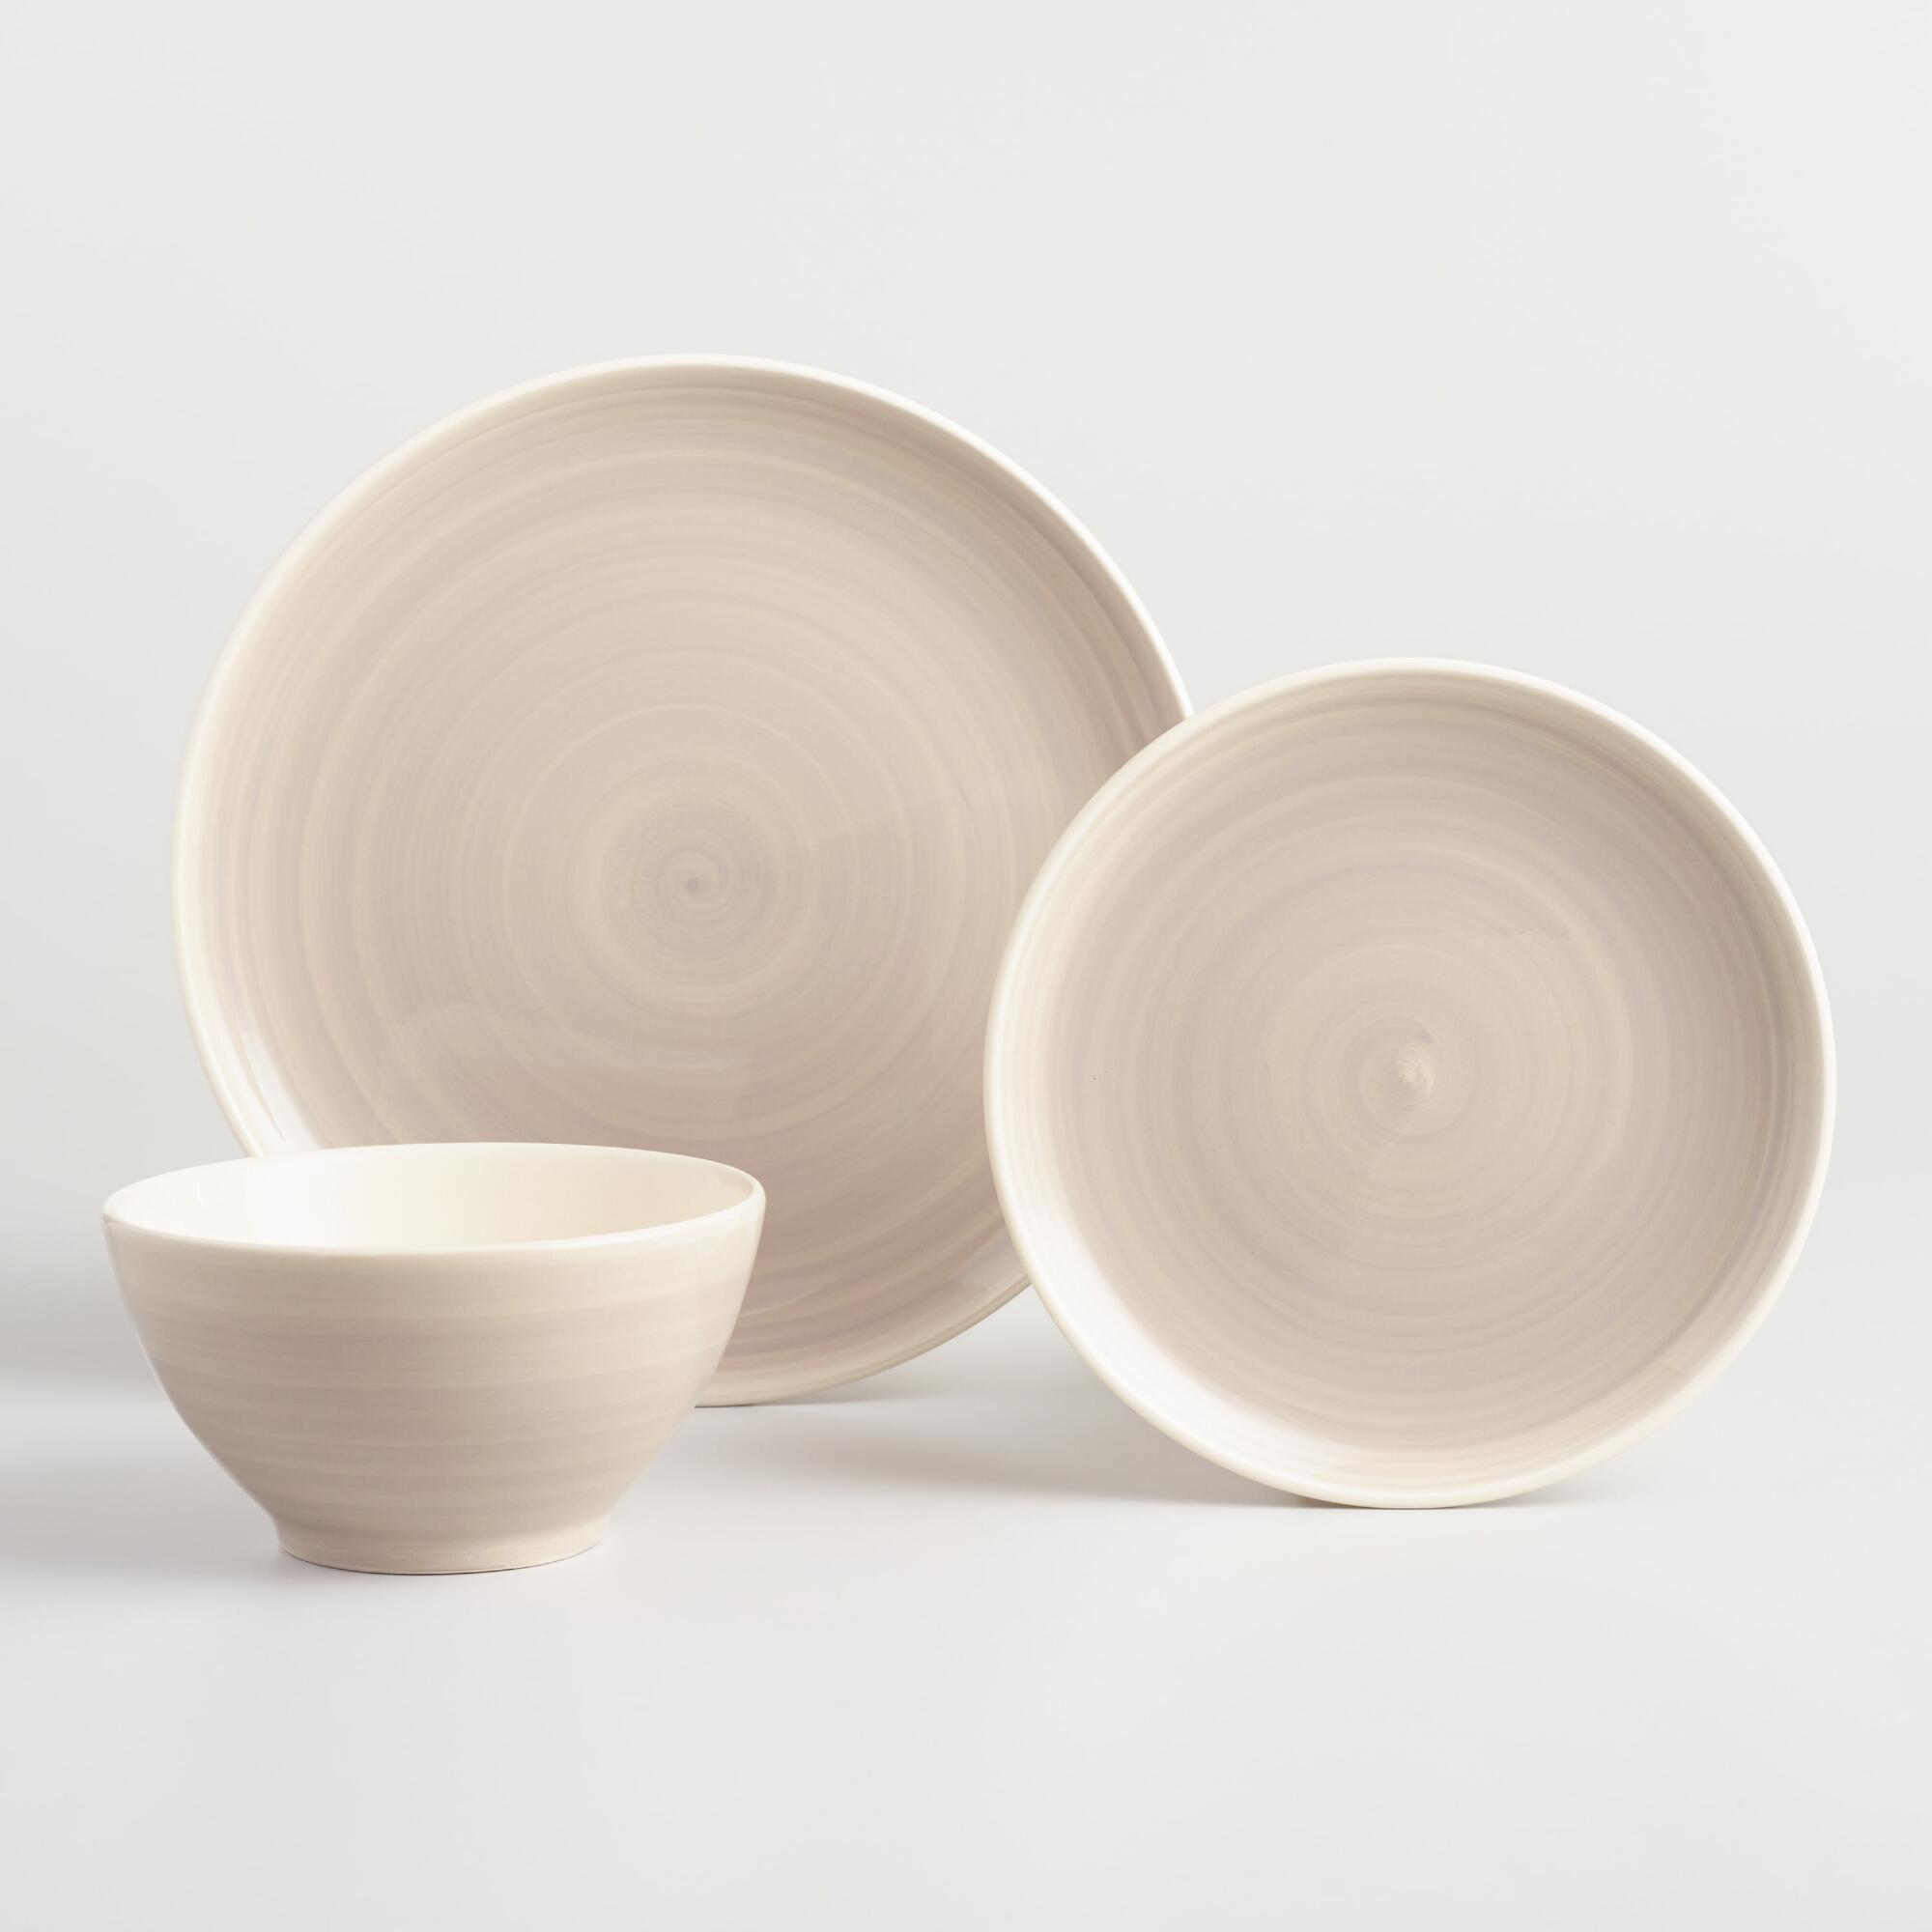 Gray Spinwash Dinnerware Collection by World Market